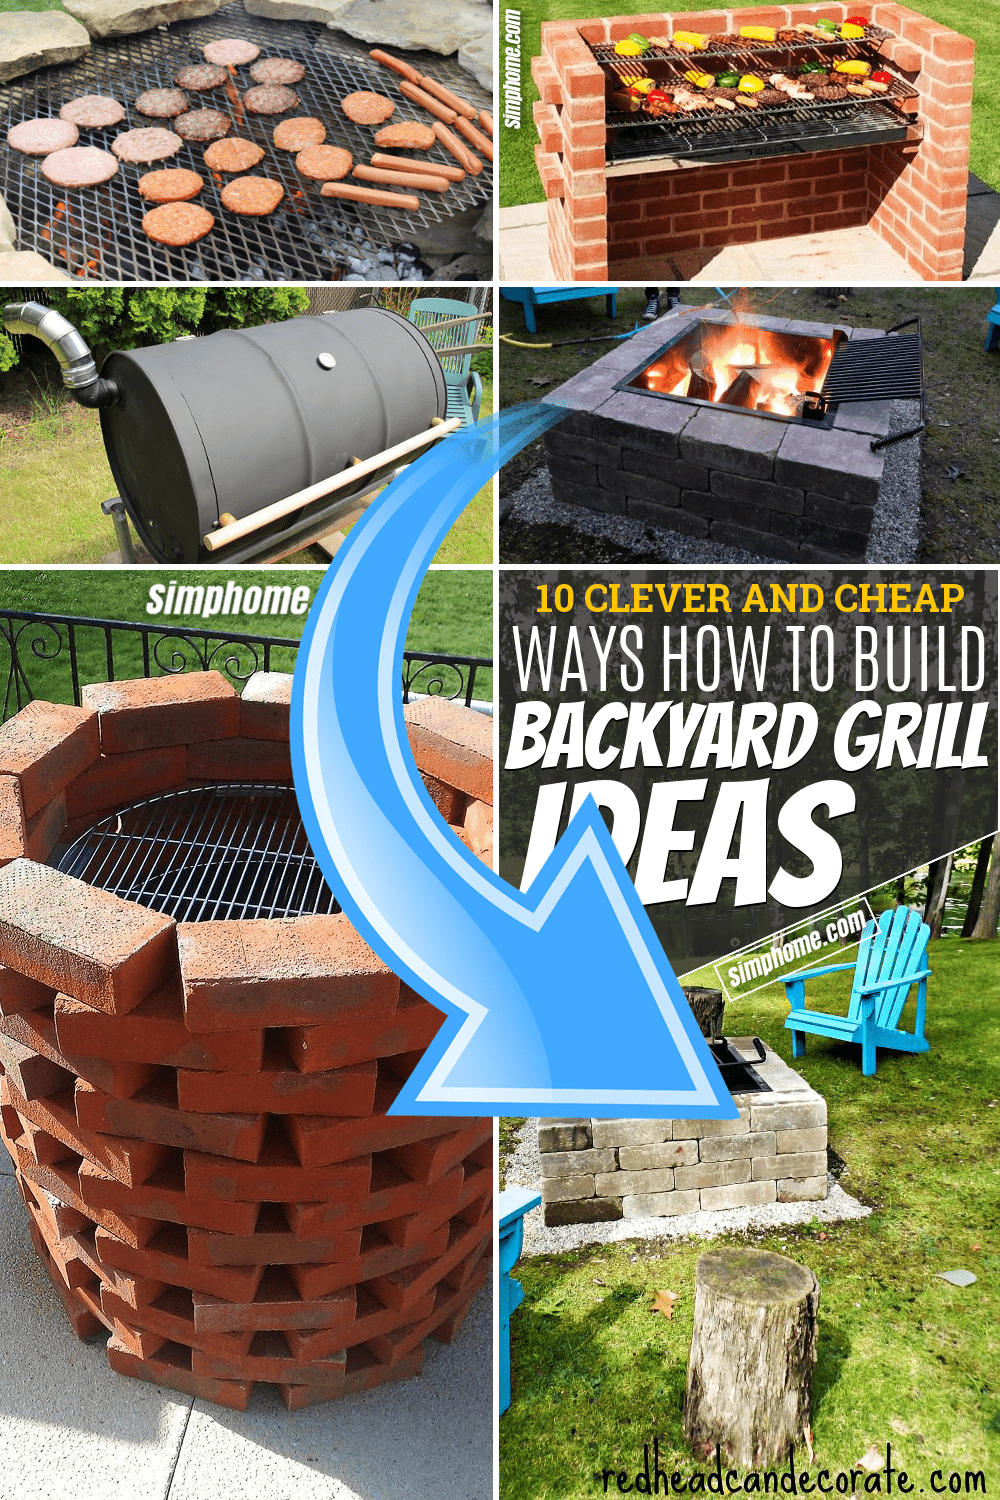 Simphome.com 10 Clever and Cheap Ways How to Build Backyard Grill Ideas Pinterest Faetured Image